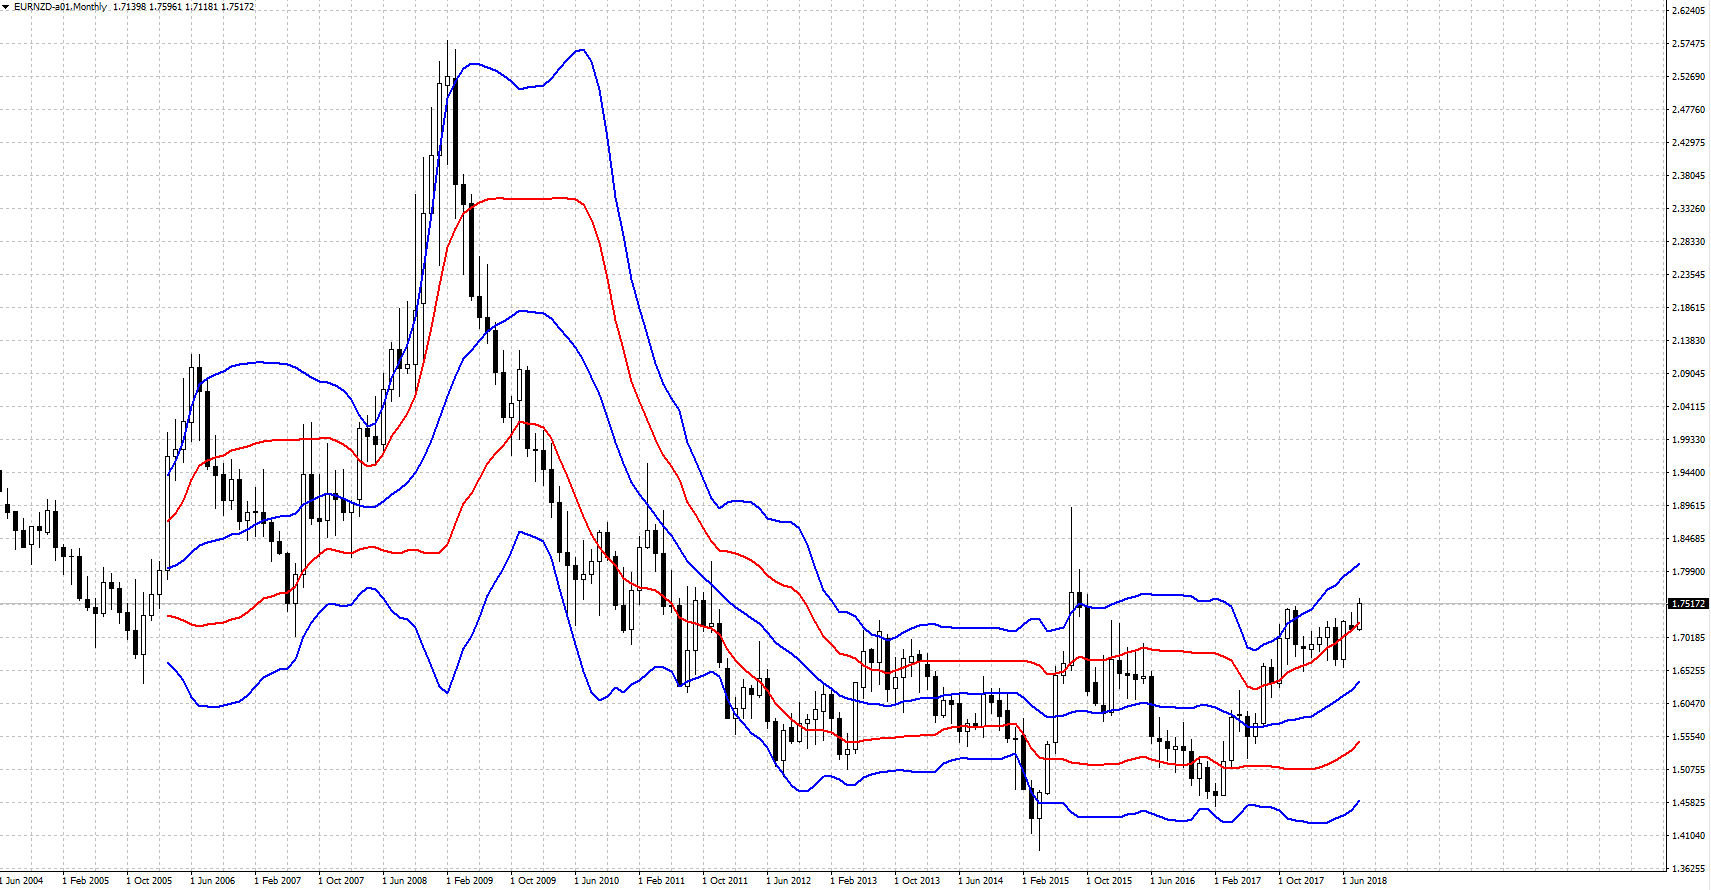 EURNZD-201808.PNG